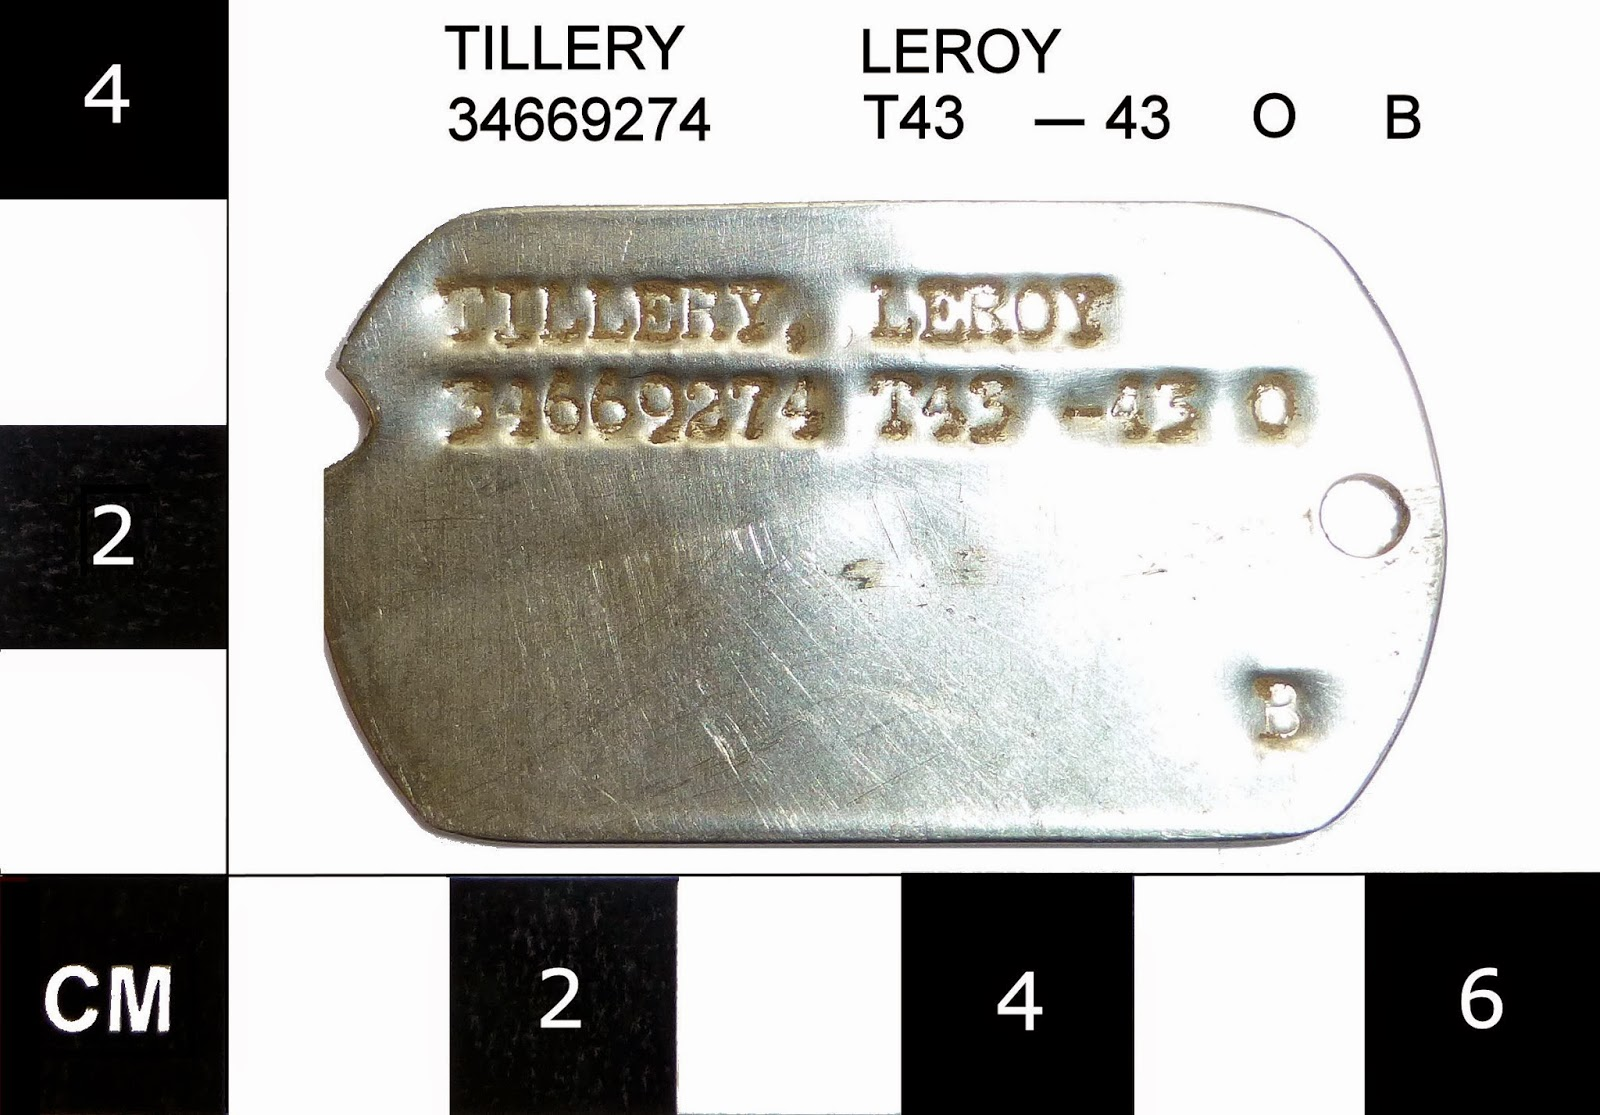 Can We Send Leroy Tillery's US WWII Dog Tag Home? (Case #23)